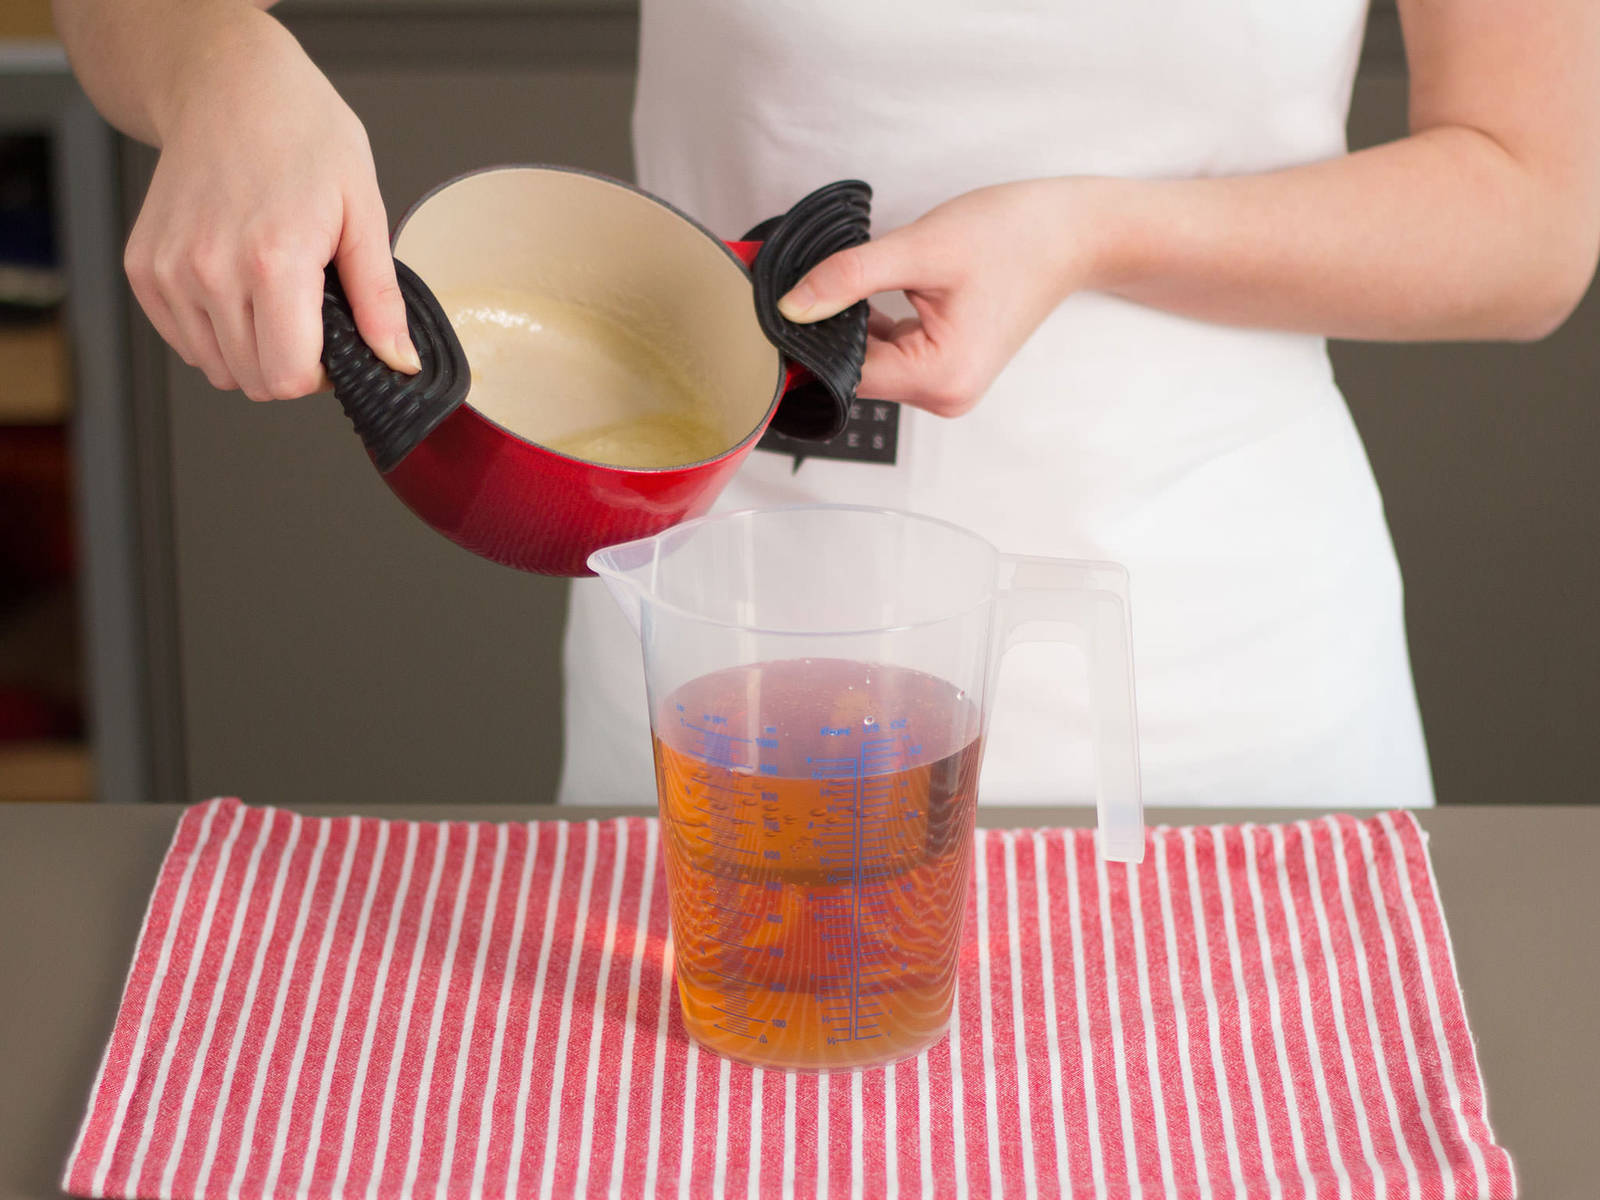 Add vanilla extract to pan. In a large measuring cup, mix apple juice and ginger ale. Pour contents of the pan into apple juice and ginger ale mixture. Stir carefully and enjoy!